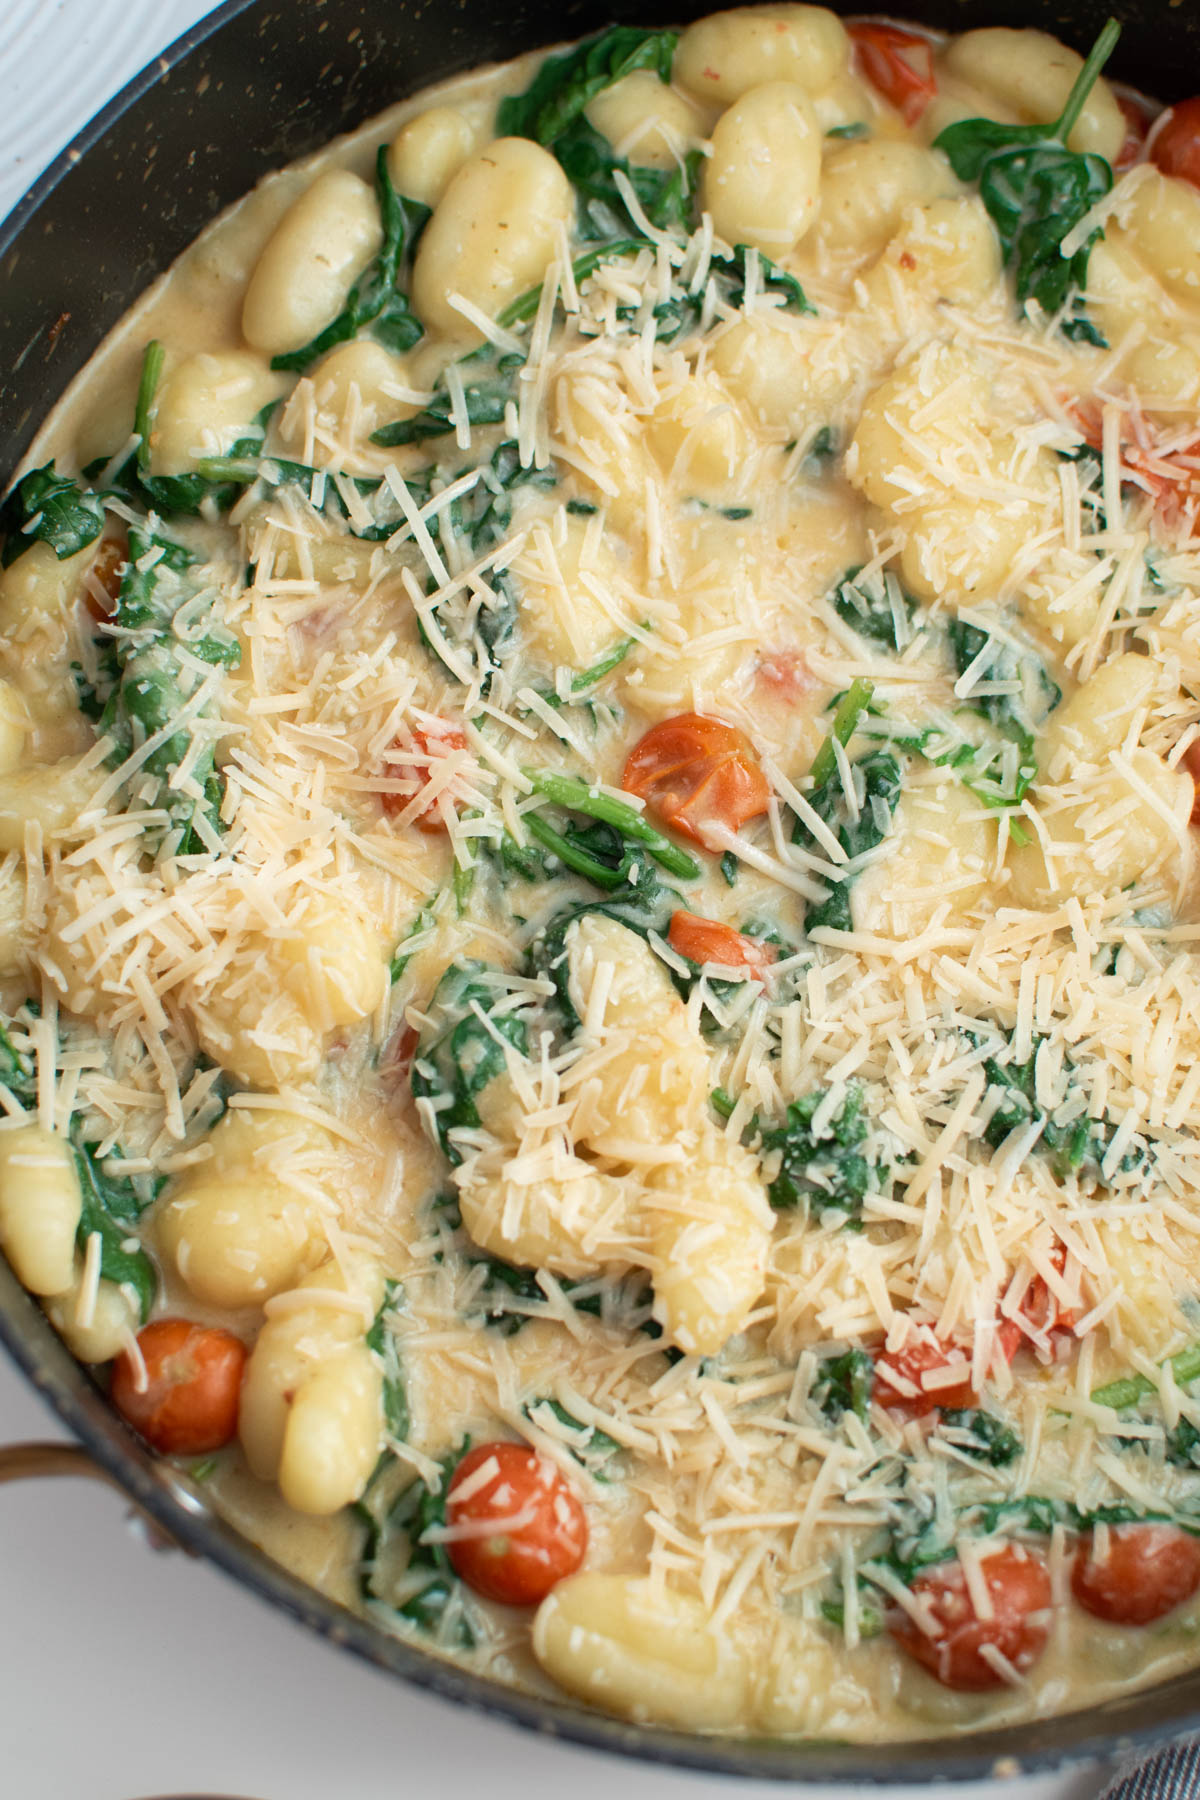 Creamy gnocchi with tomatoes, spinach, and parmesan cheese in large black skillet.